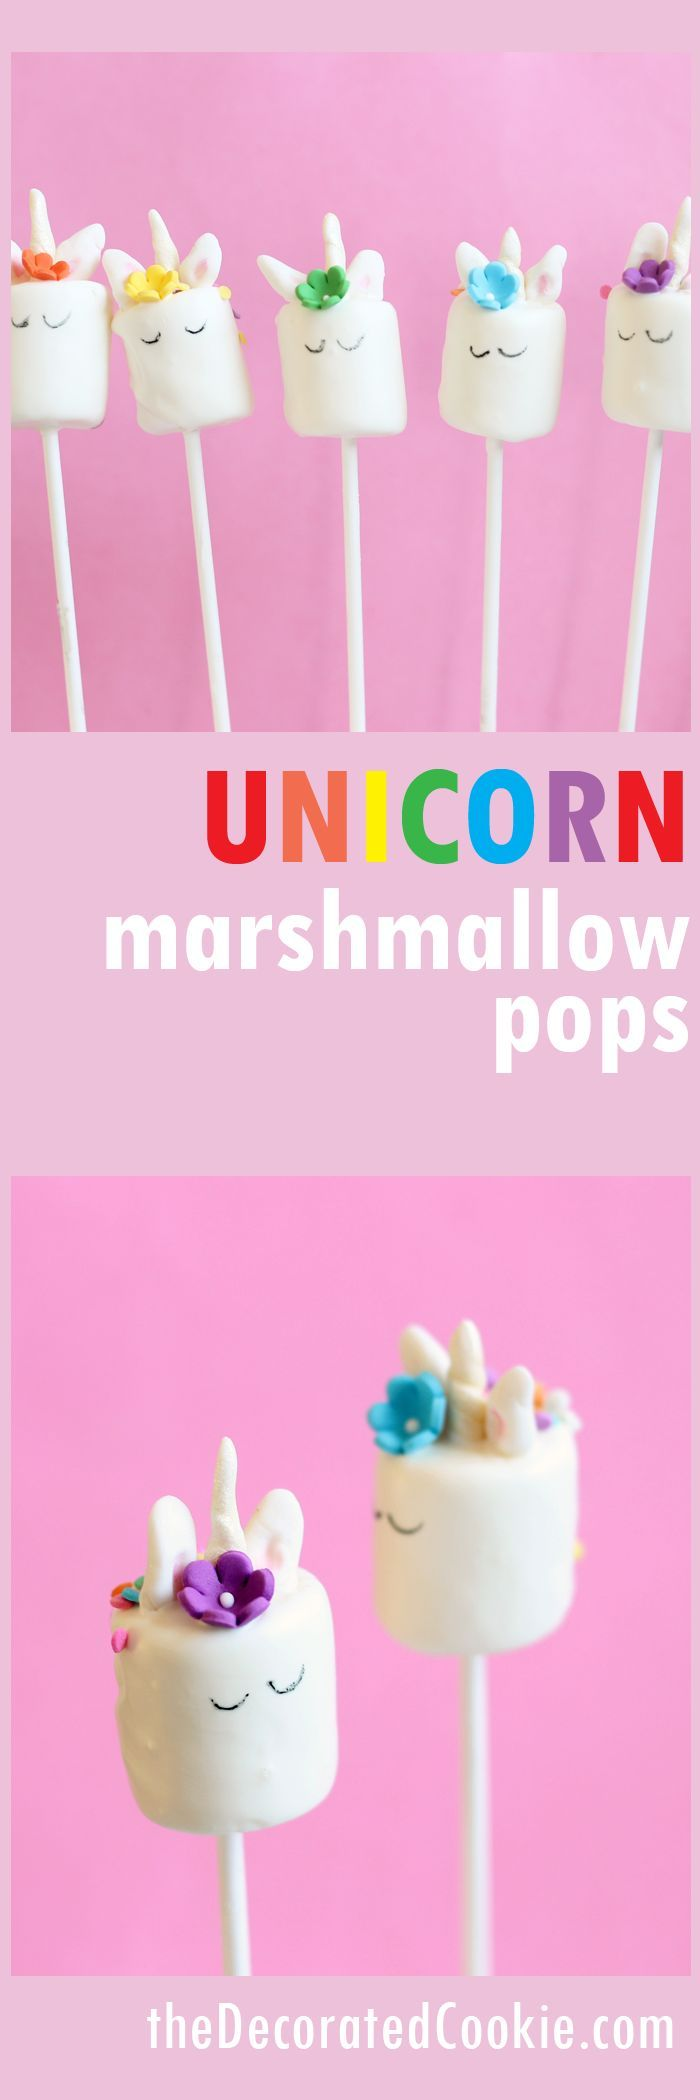 DIY unicorn marshmallow pops